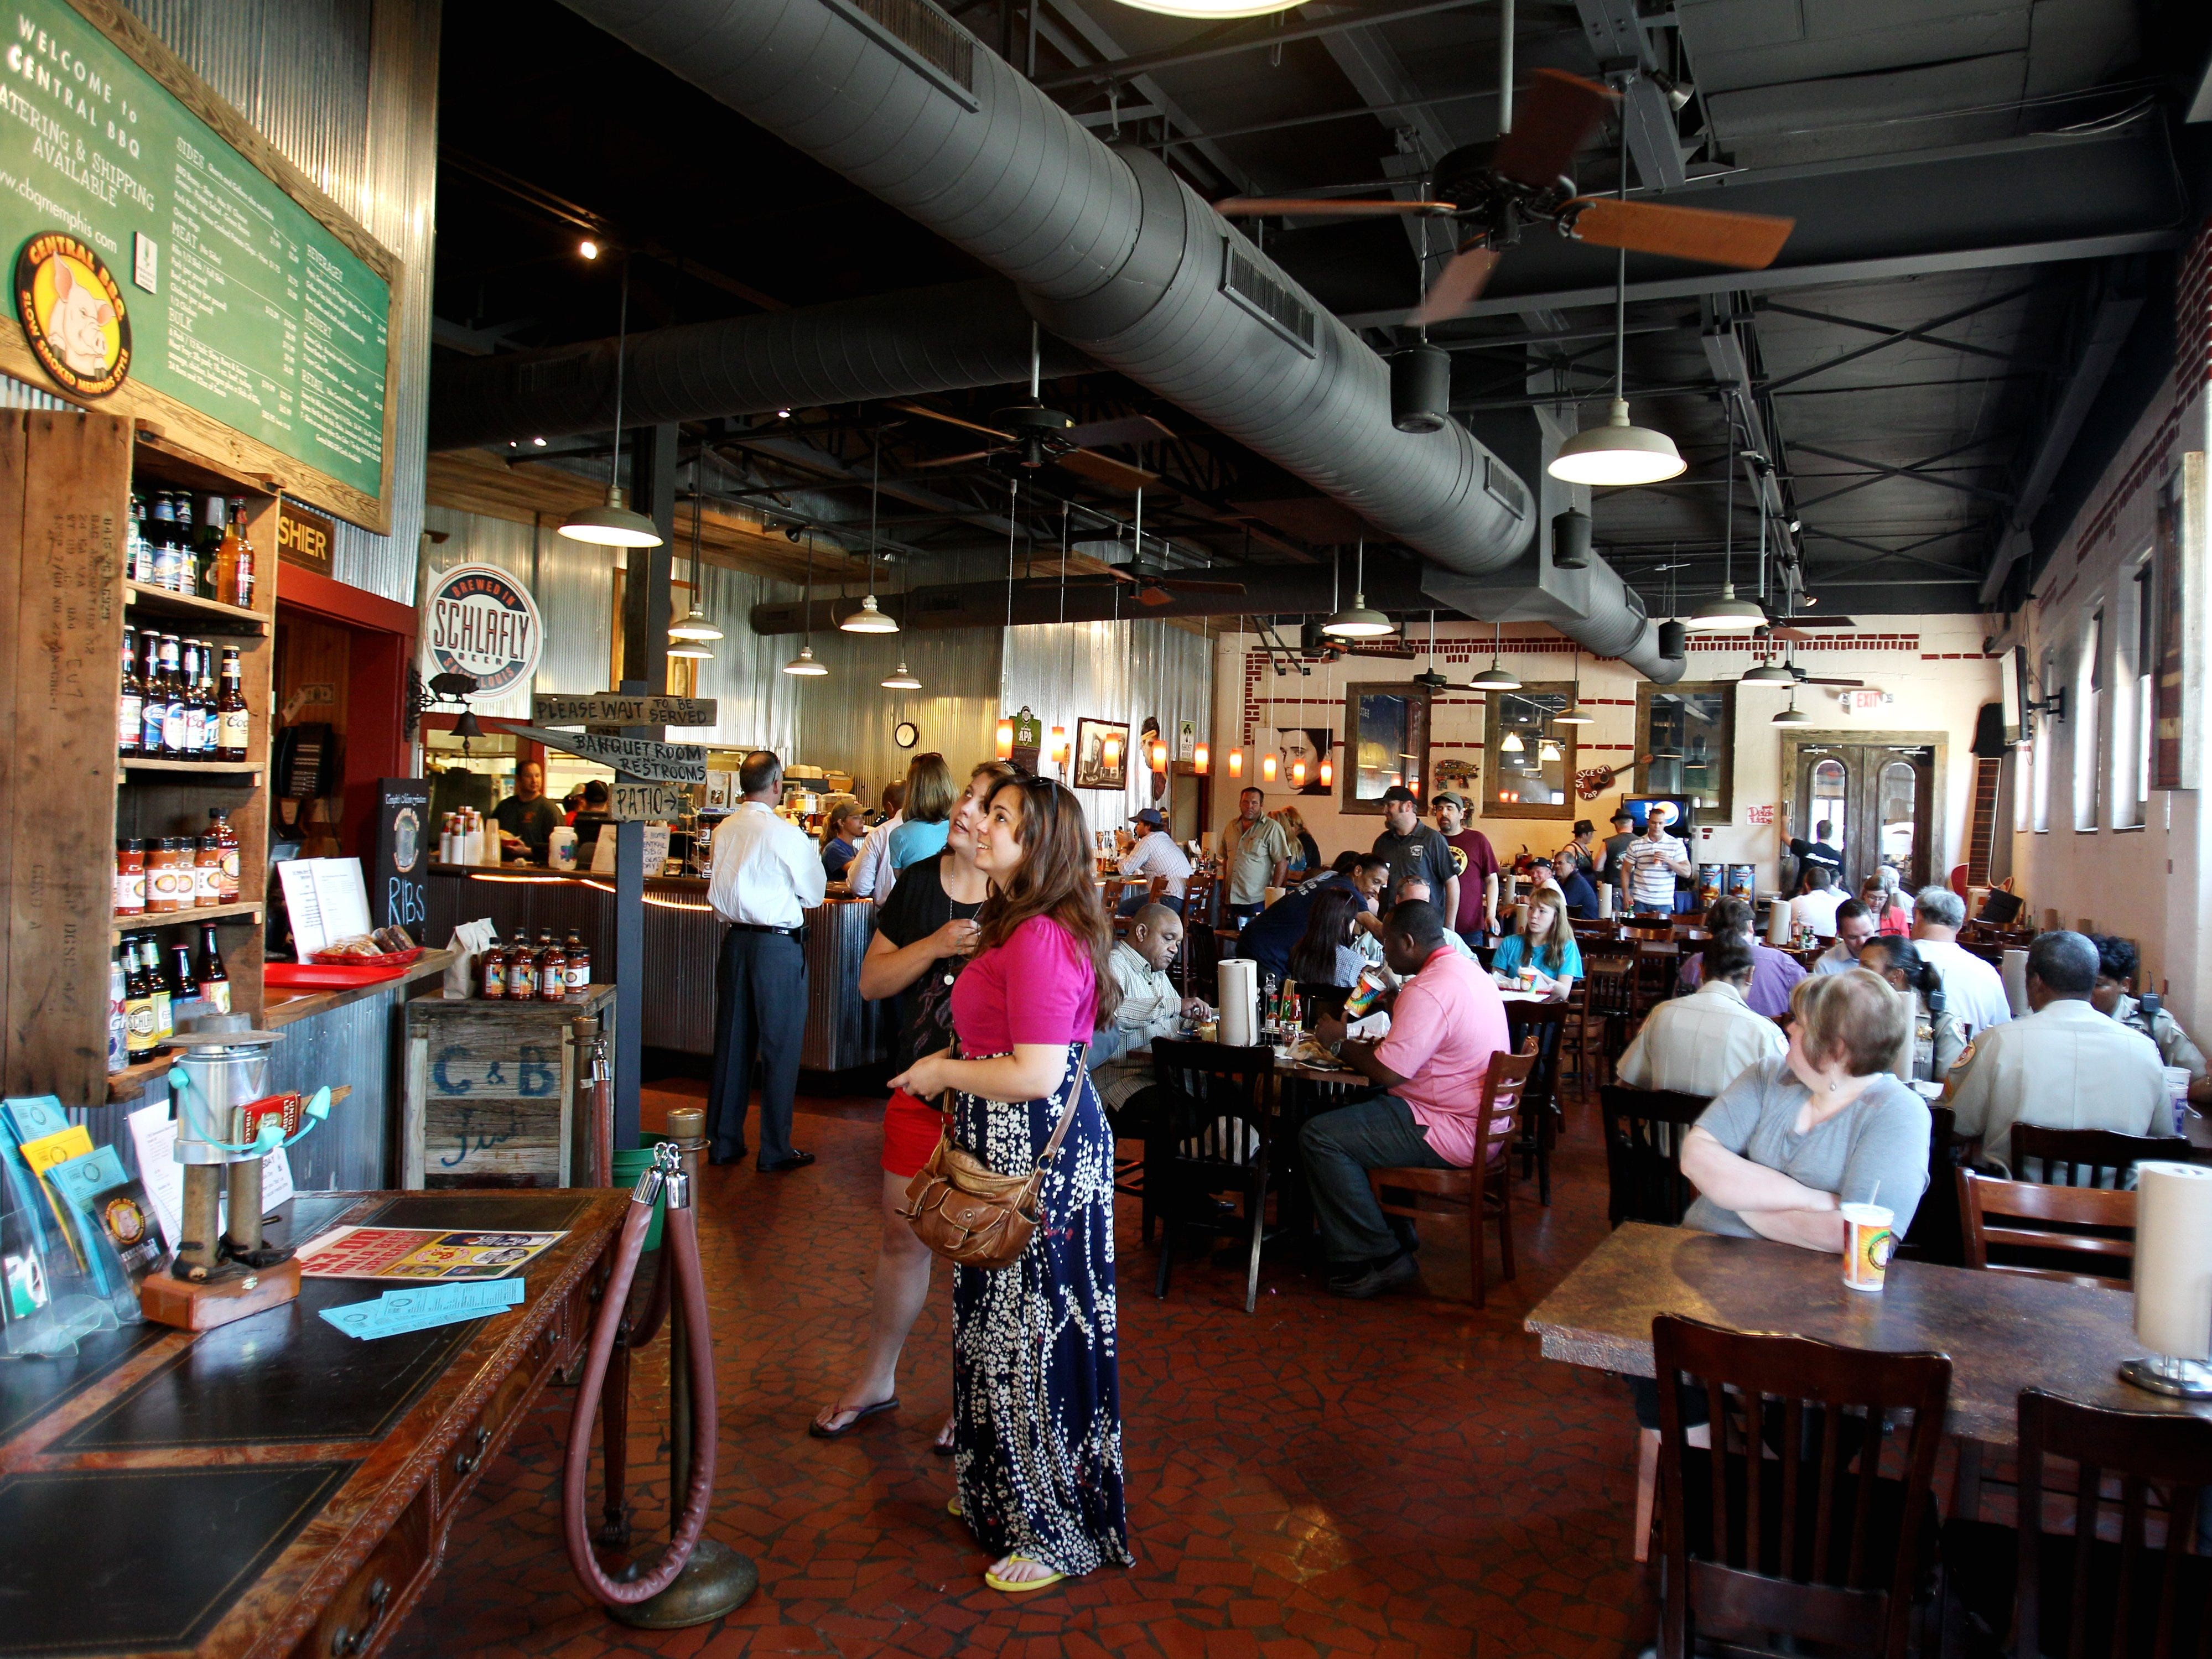 Central BBQ downtown on Butler behind the National Civil Rights Museum has a large main dining room and two other large rooms that can be used for private events on May 14, 2013.